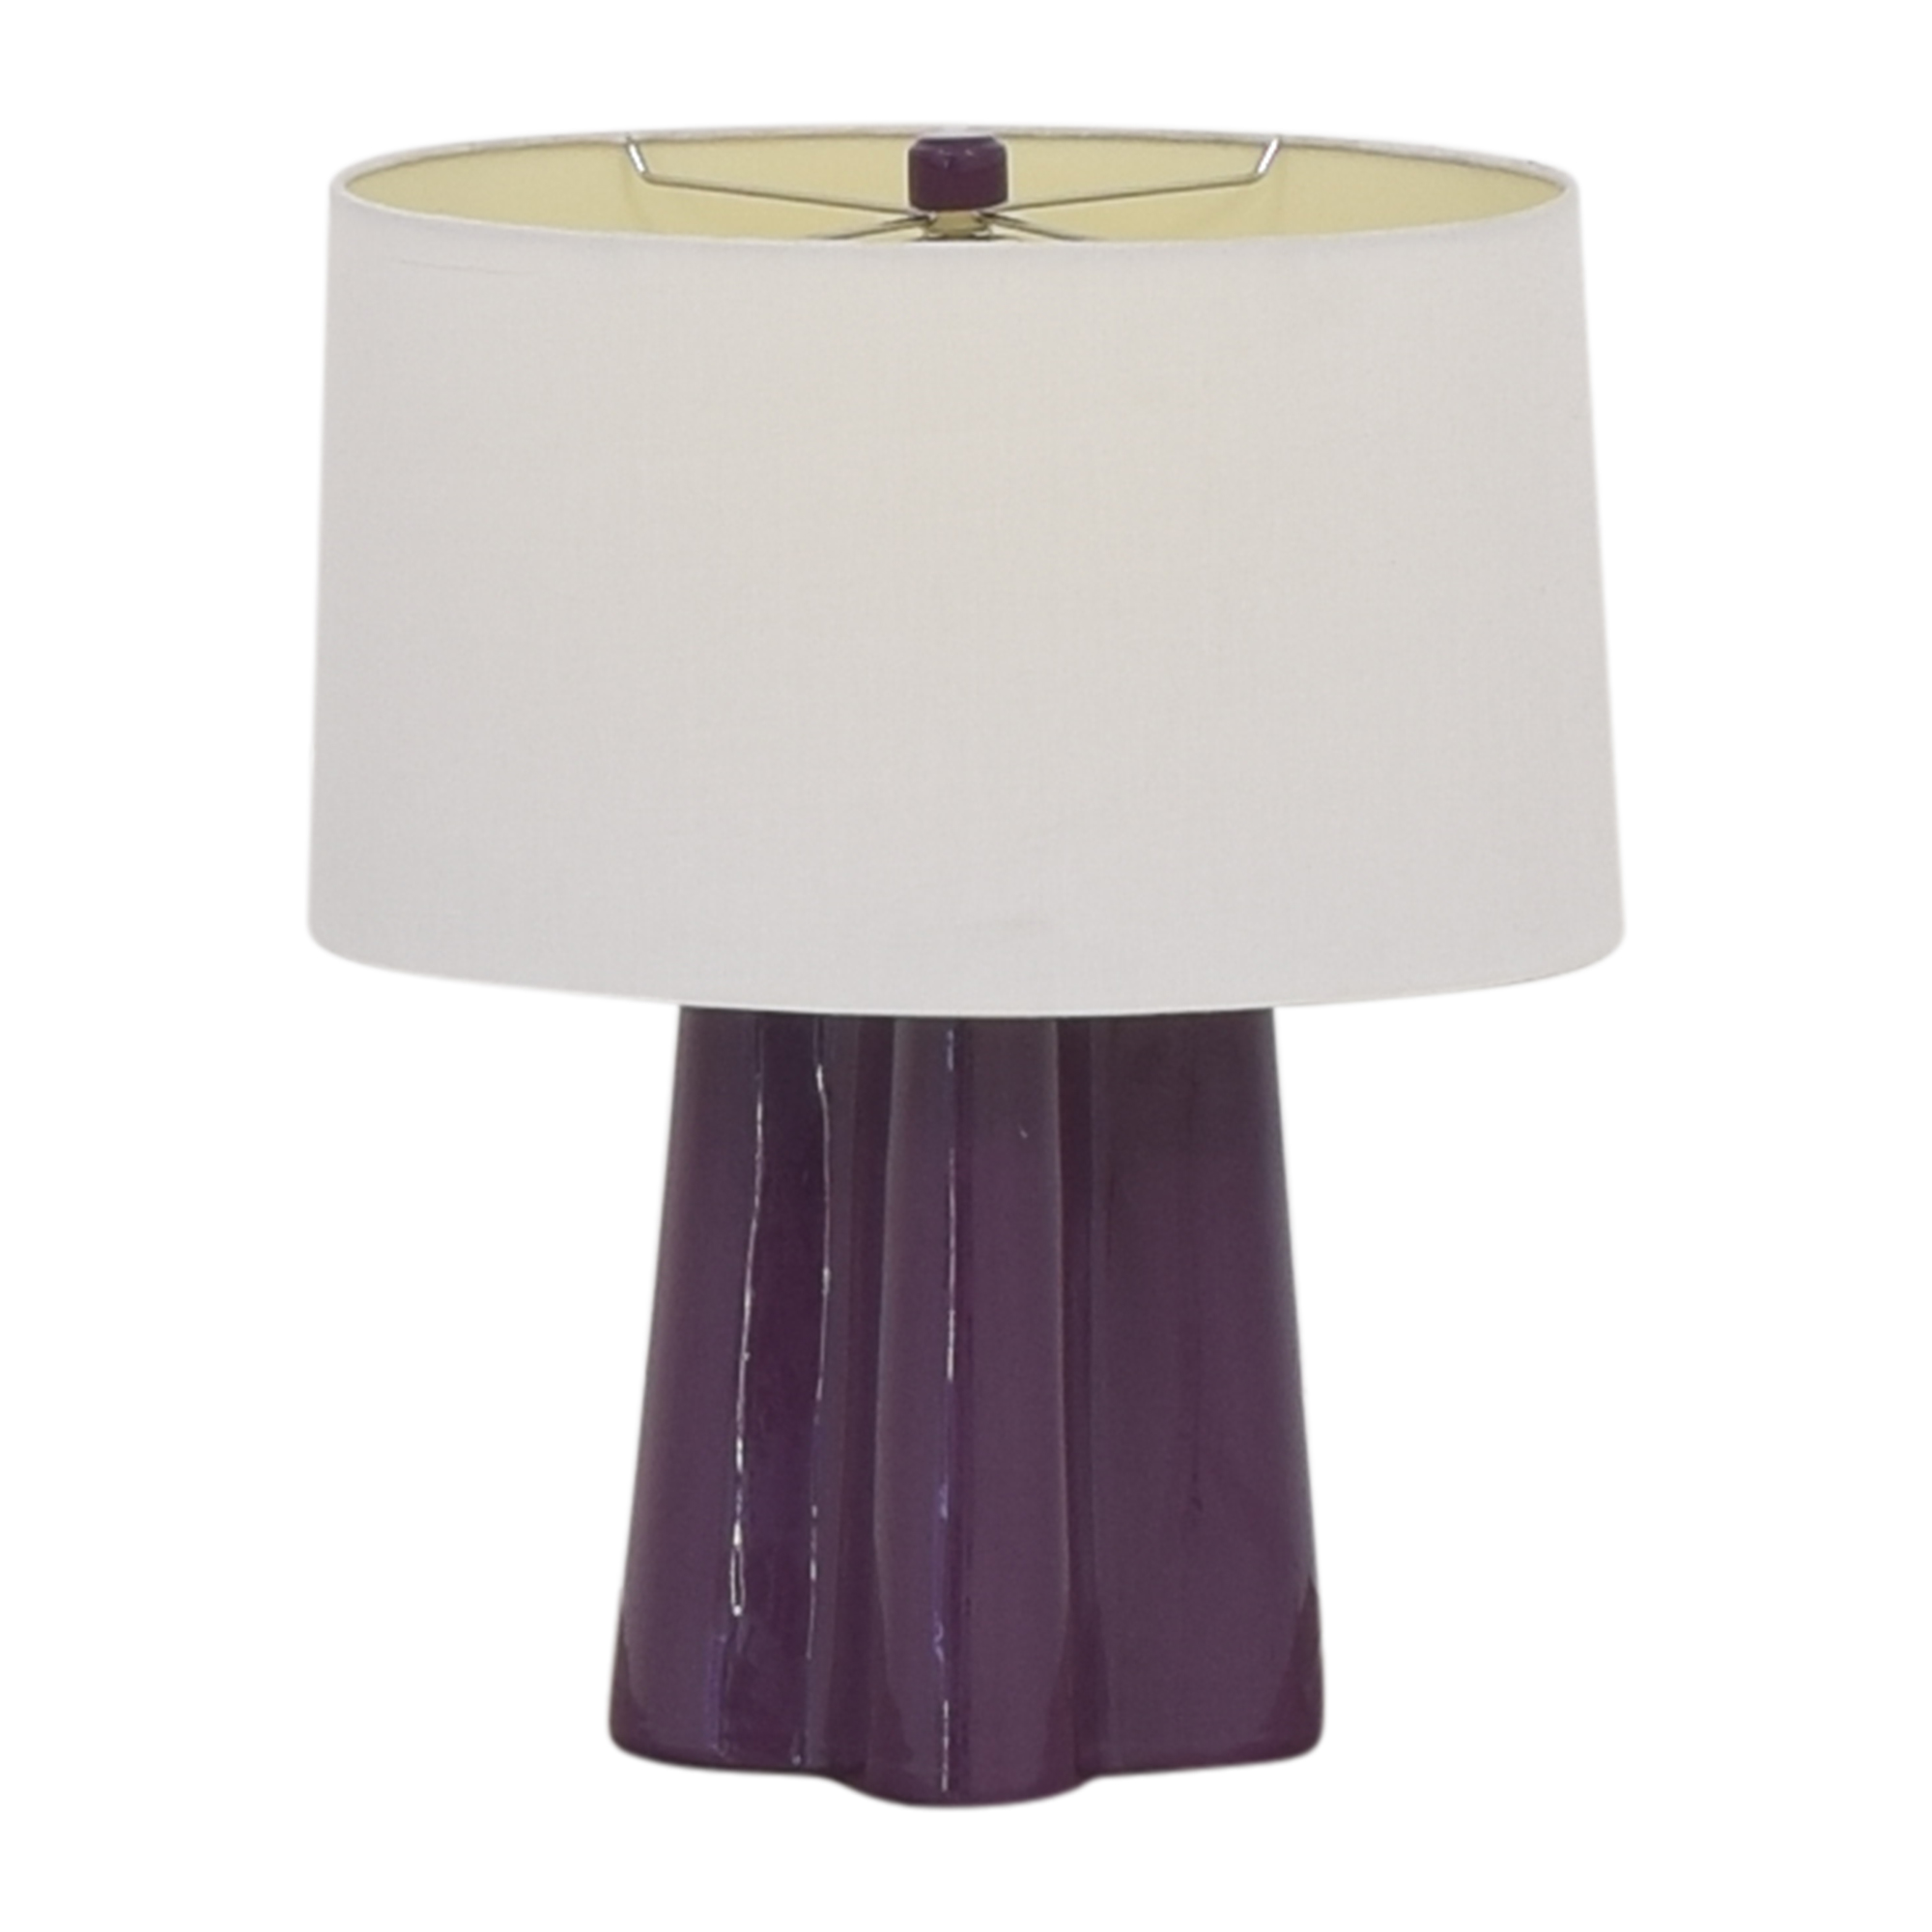 shop Jonathan Adler Table Lamp Jonathan Adler Lamps